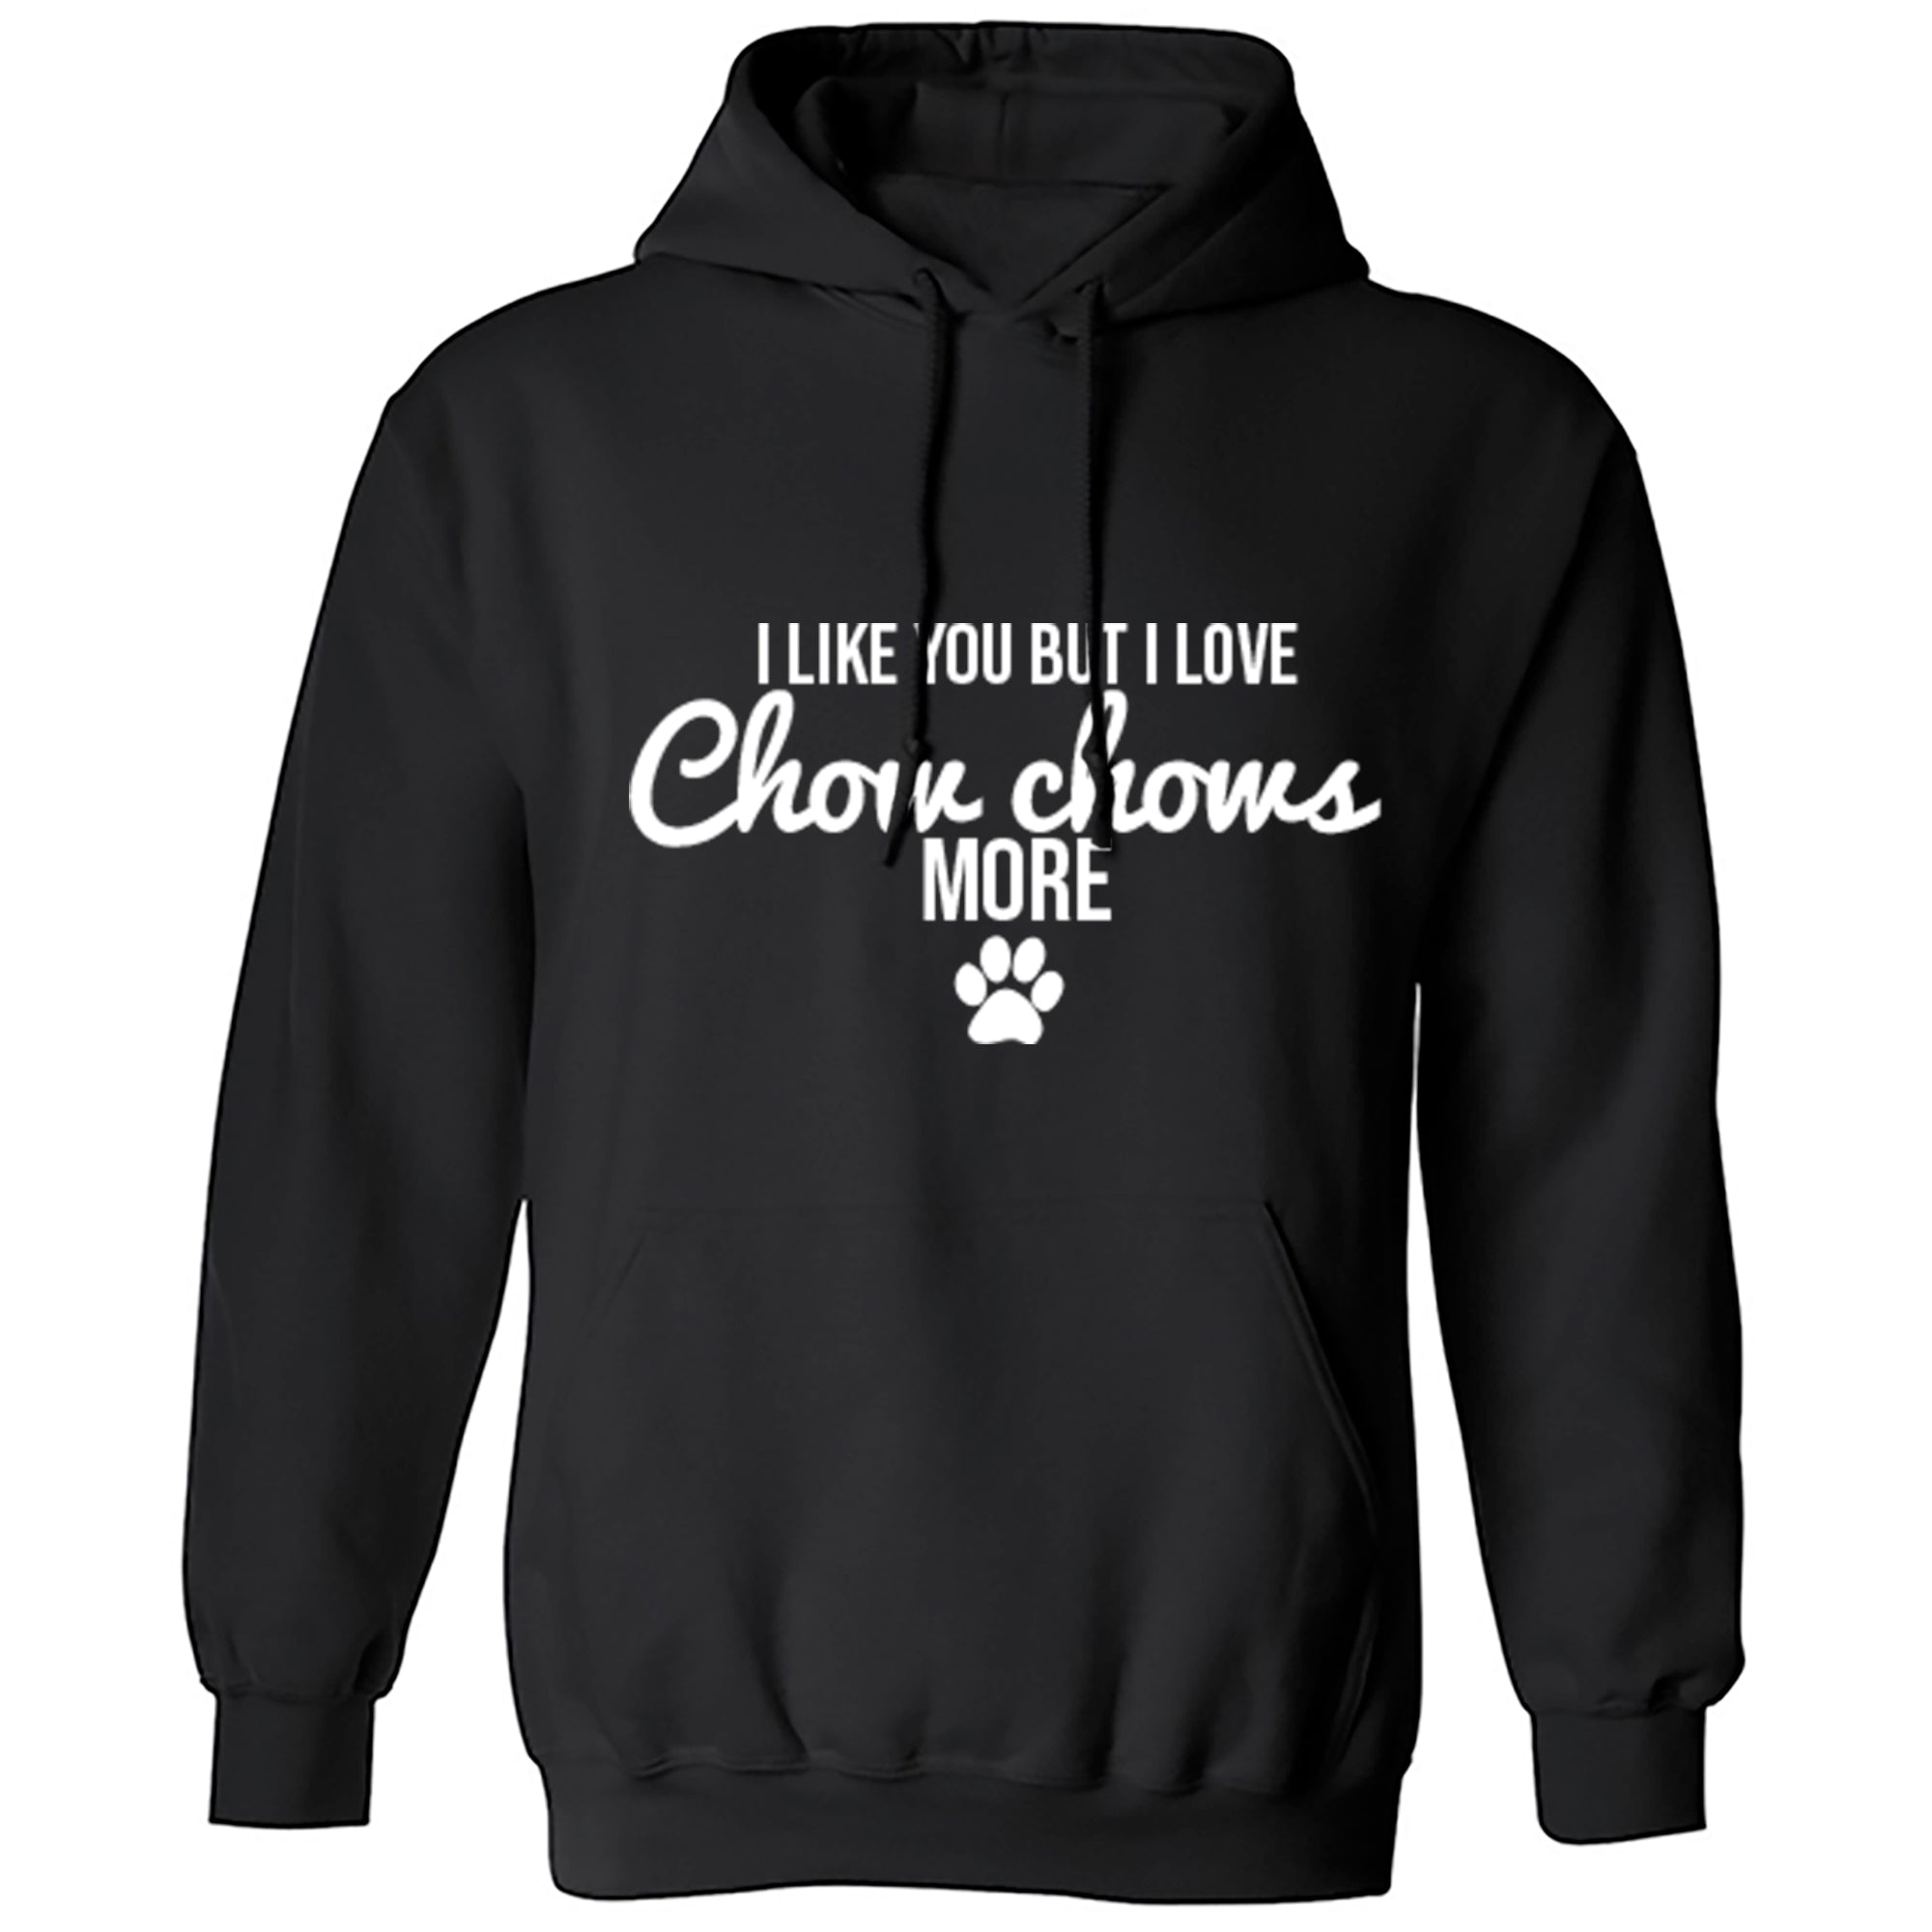 I Like You But I Love Chow Chows More Unisex Hoodie S0093 - Illustrated Identity Ltd.